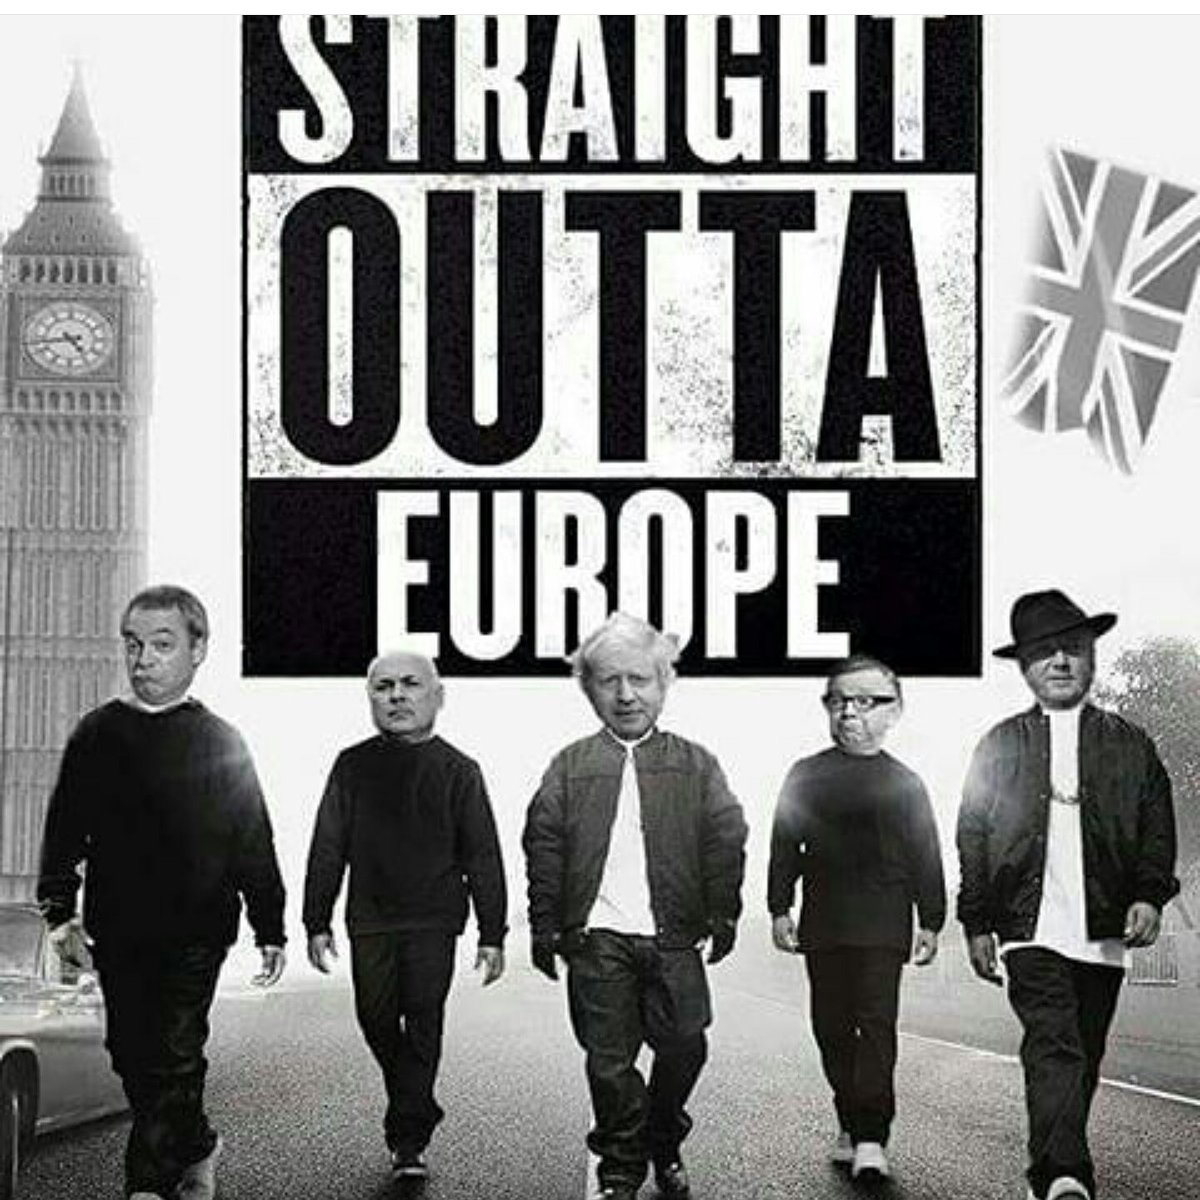 Straight outta Europe.... what are the pros and cons? Share your thoughts